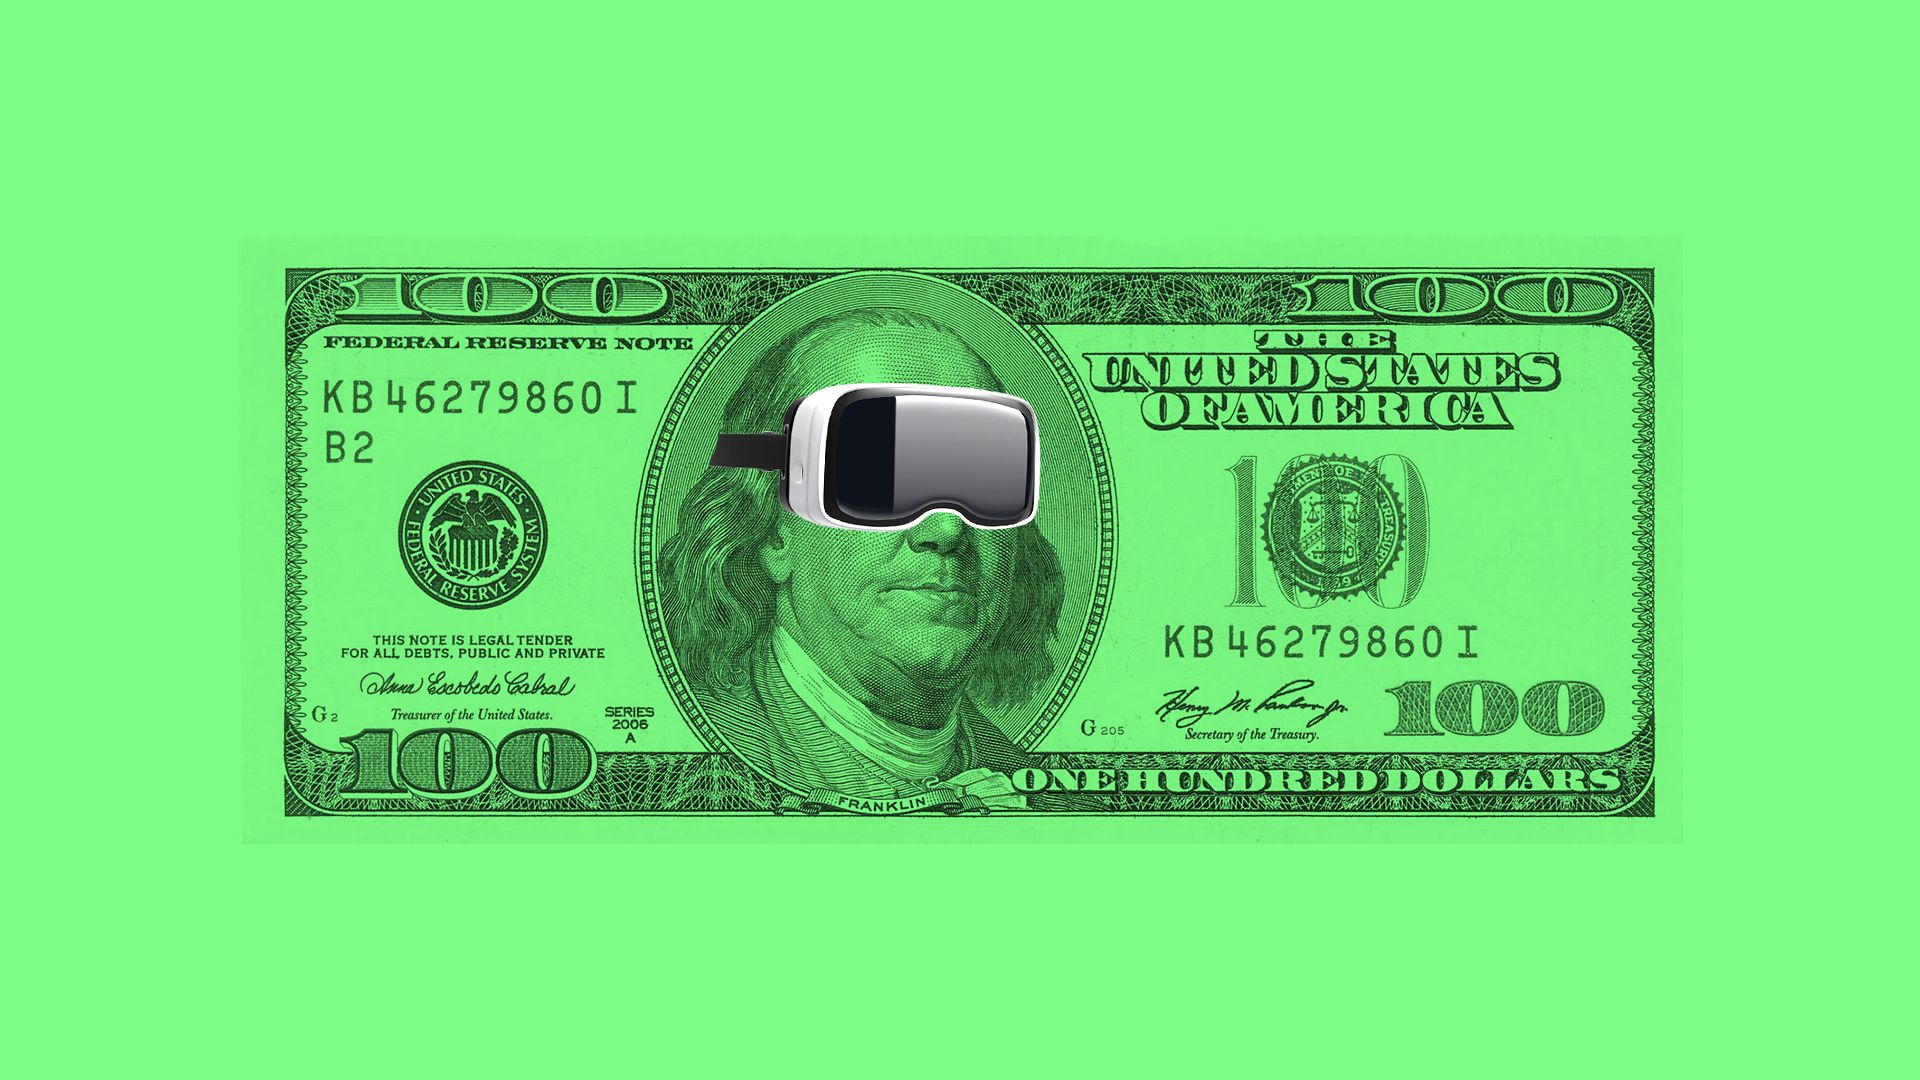 Illustration of Ben Franklin on a $100 bill wearing VR goggles